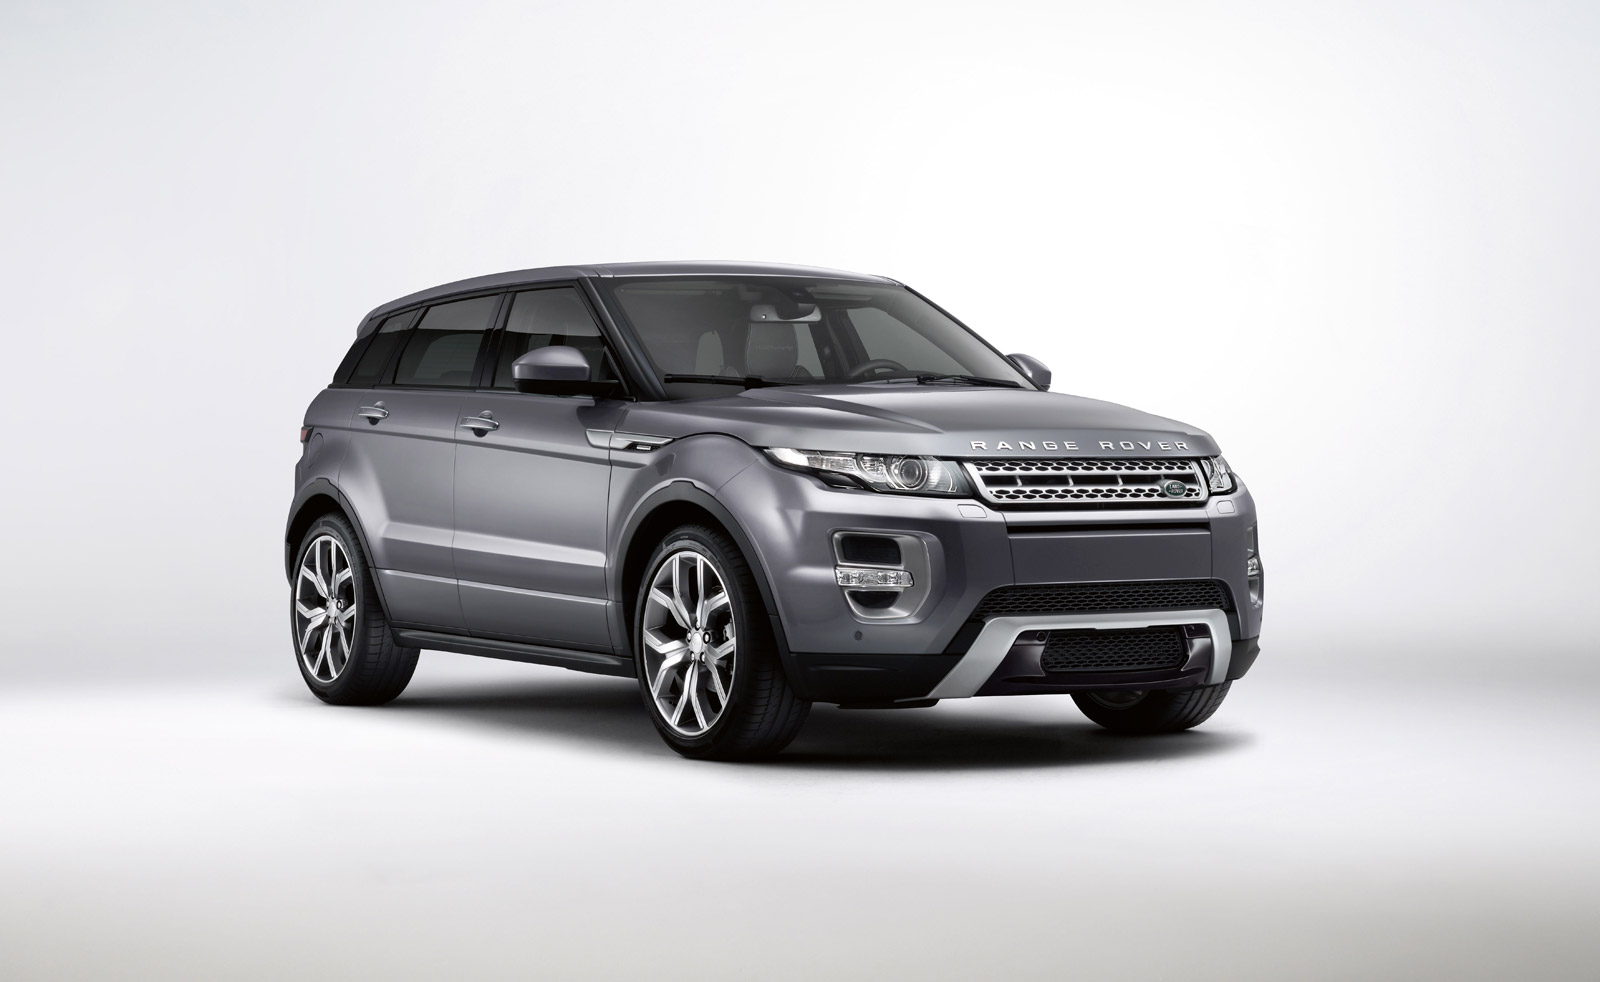 2015 land rover range rover evoque review ratings specs. Black Bedroom Furniture Sets. Home Design Ideas